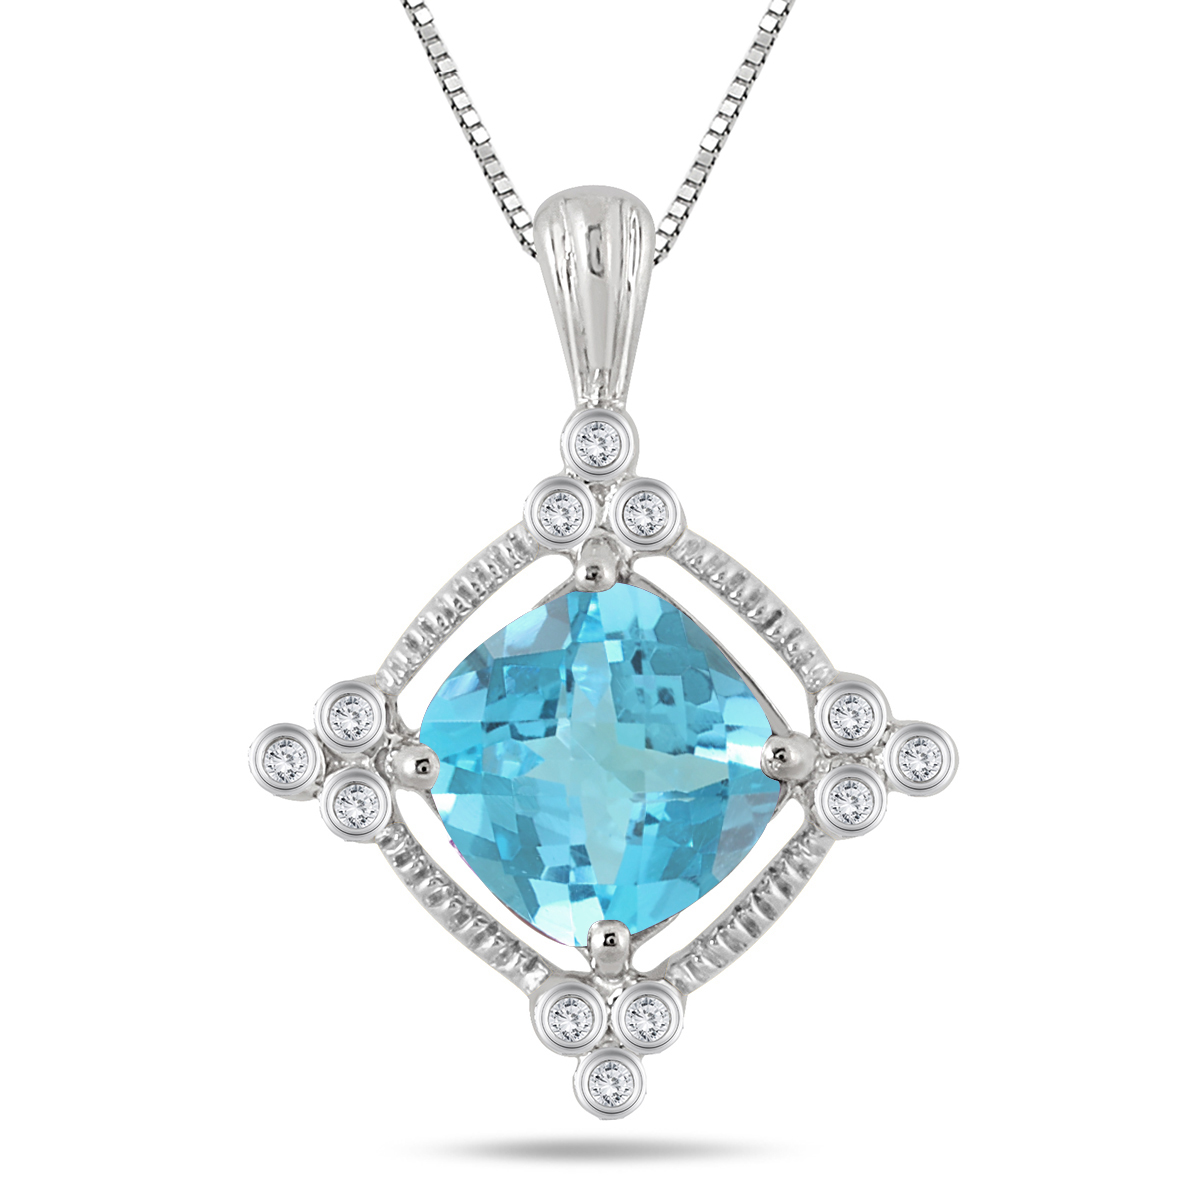 3.65 Carat Cushion Blue Topaz and Diamond Royal Rope Pendant in .925 Sterling Silver